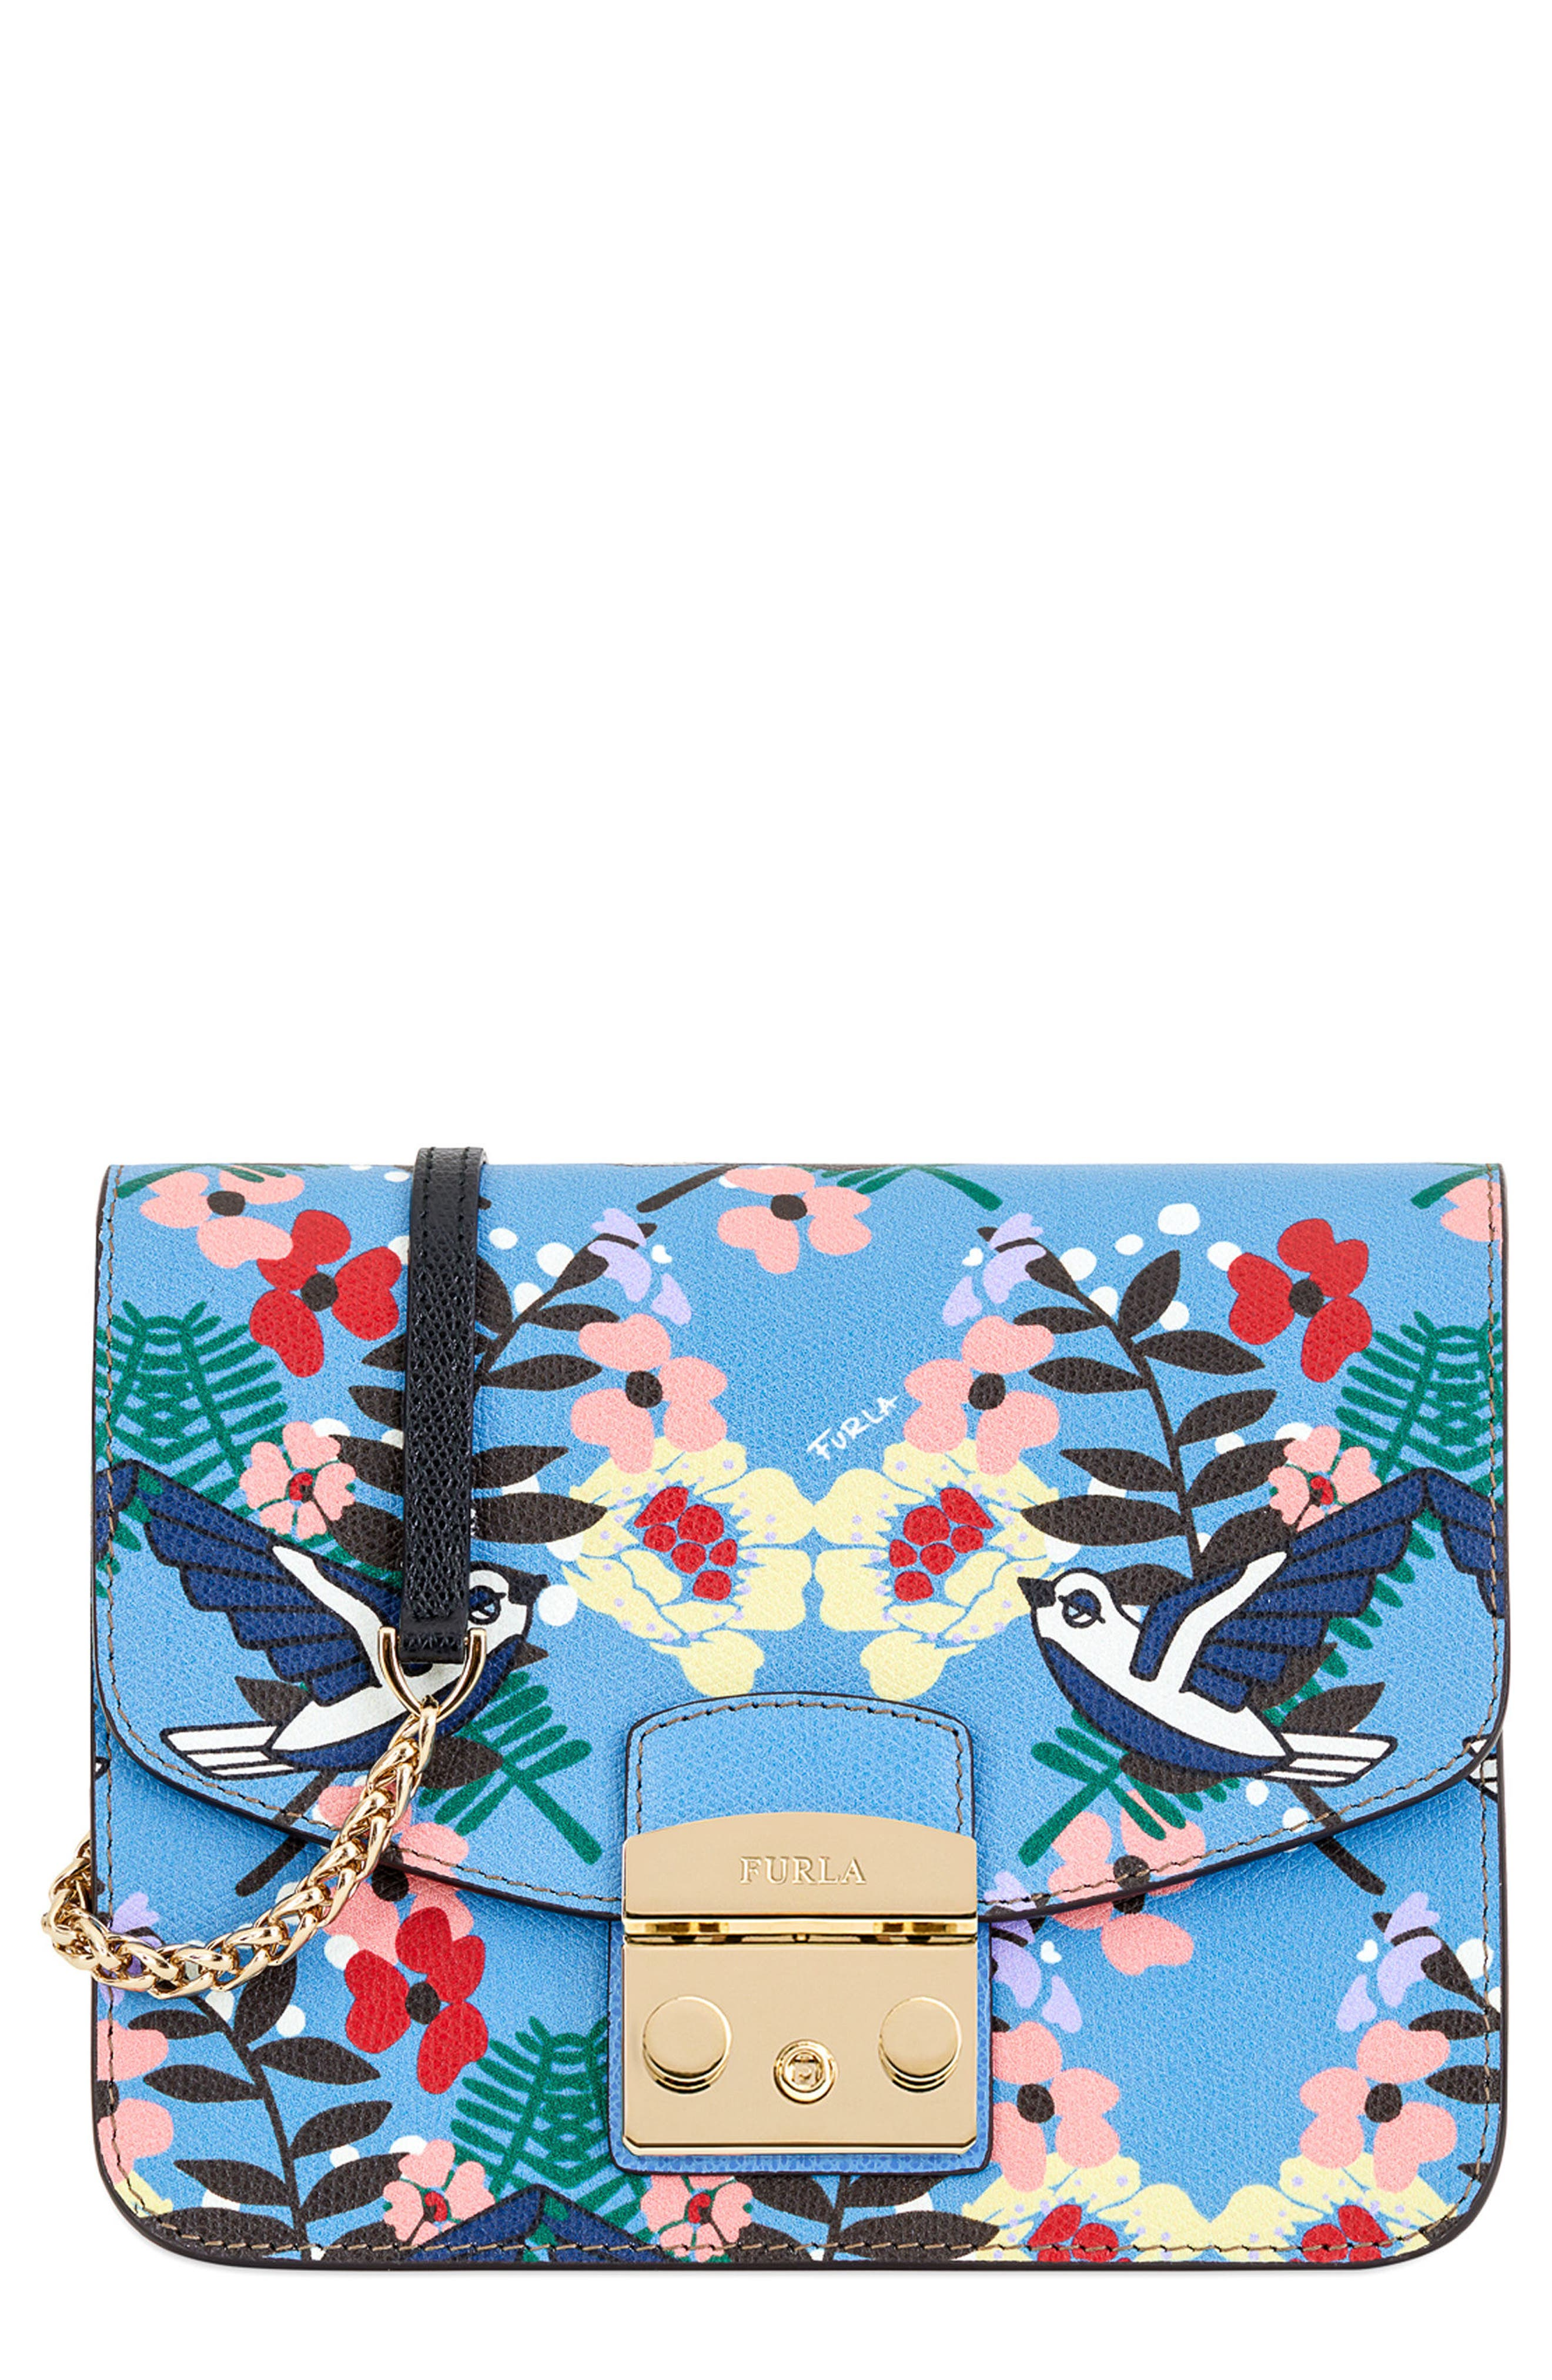 Small Metropolis Print Leather Crossbody Bag,                             Main thumbnail 1, color,                             Toni Celeste